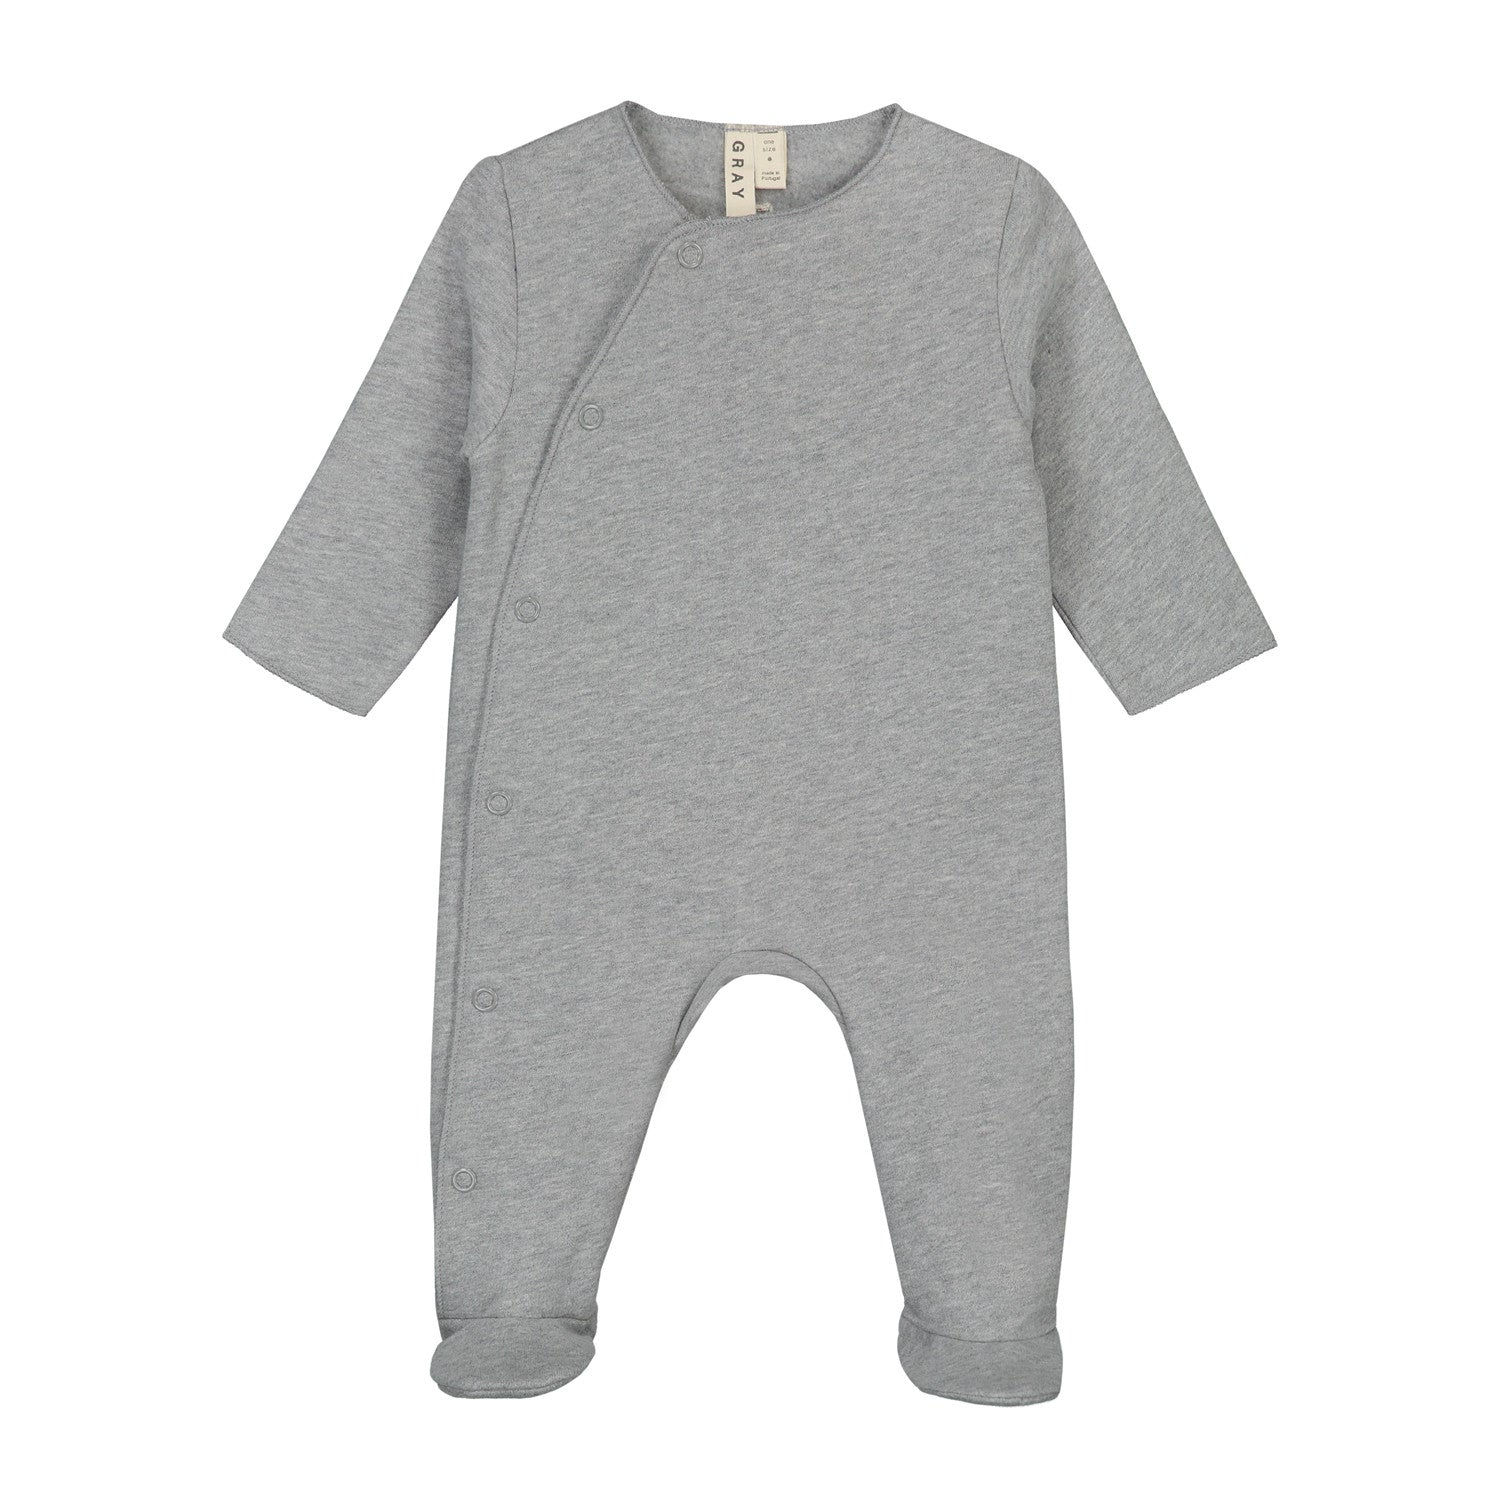 Gray Label Grey Melange Newborn Suit - Ladida